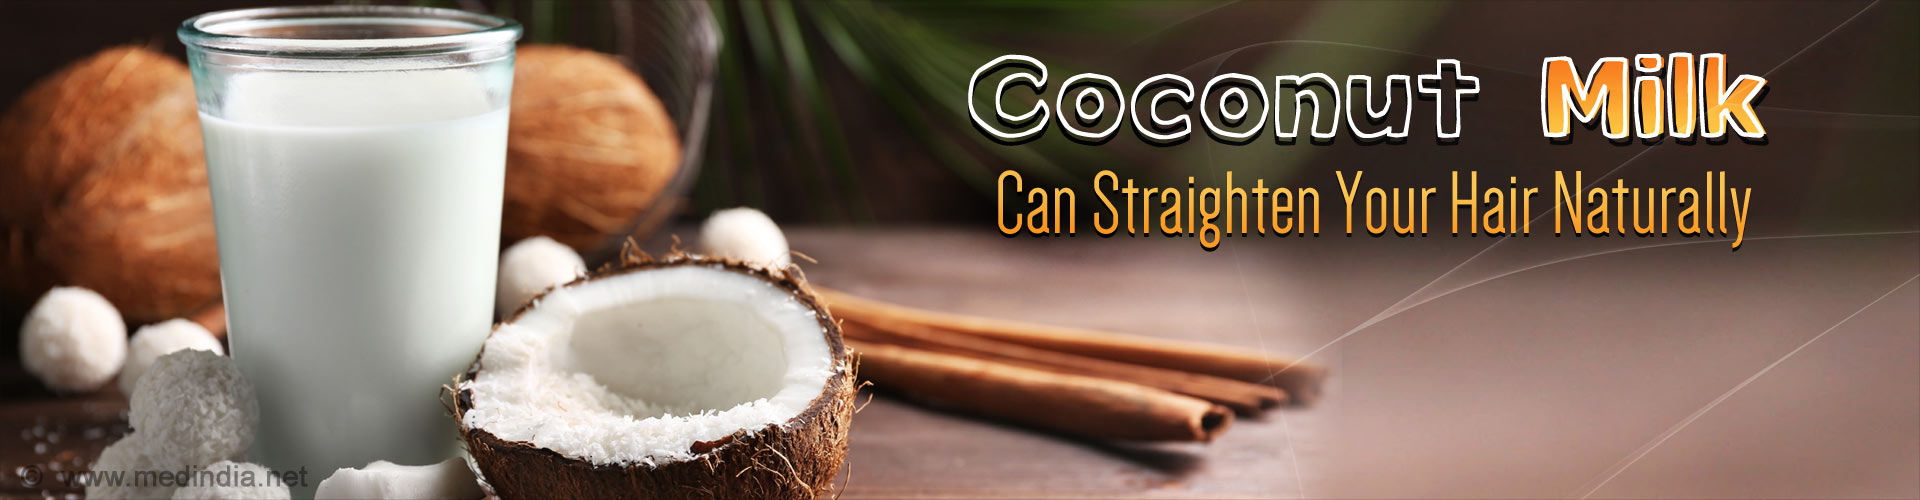 Coconut Milk Can Straighten Your Hair Naturally